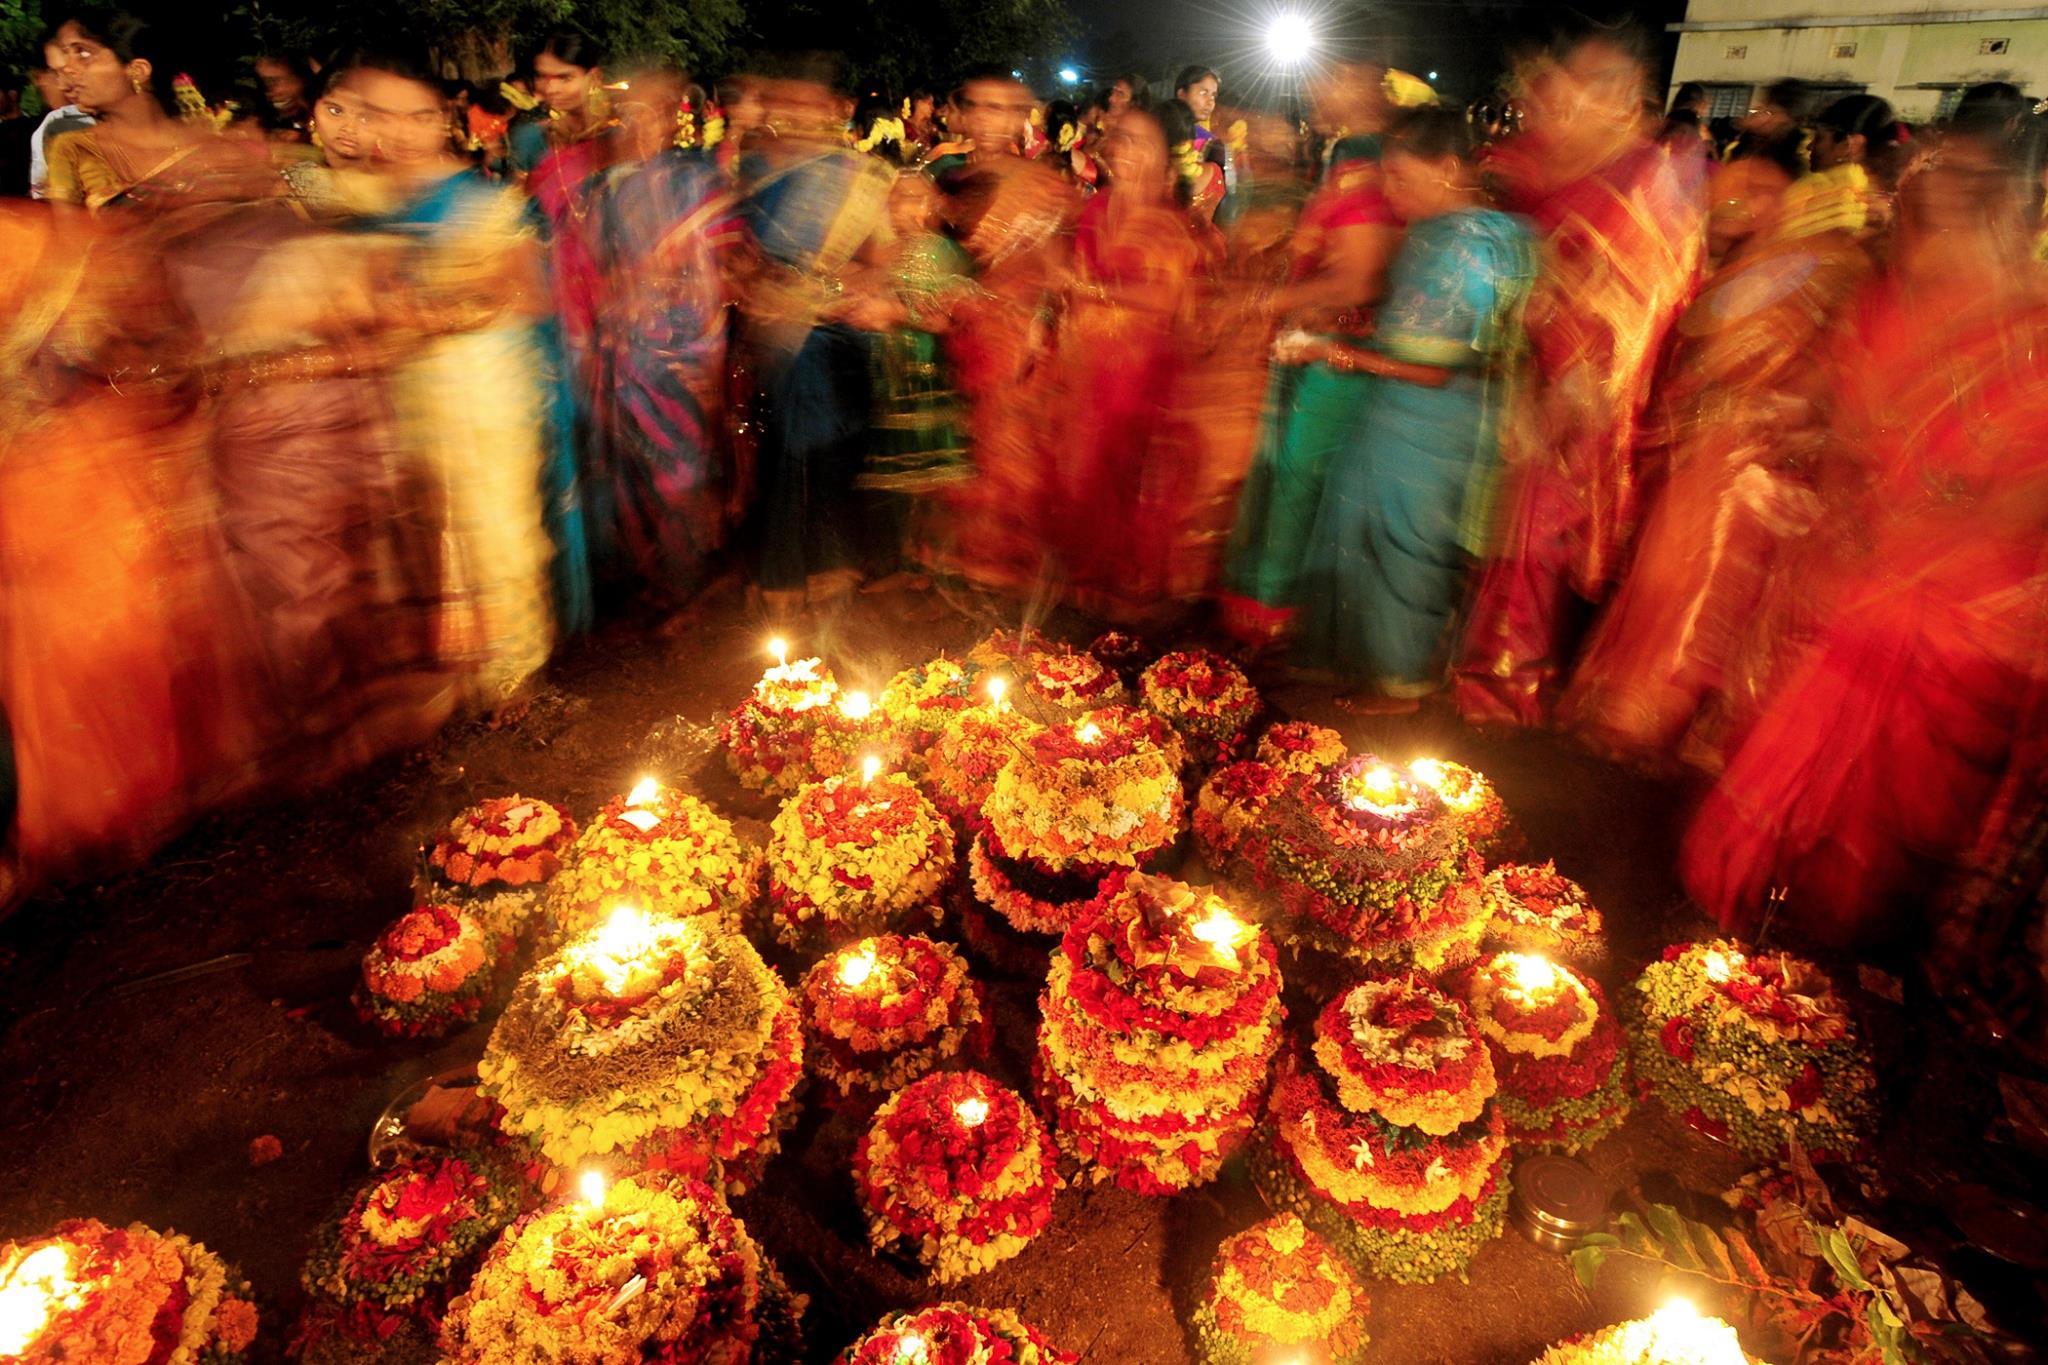 Women singing and dancing for Bathukamma celebrations